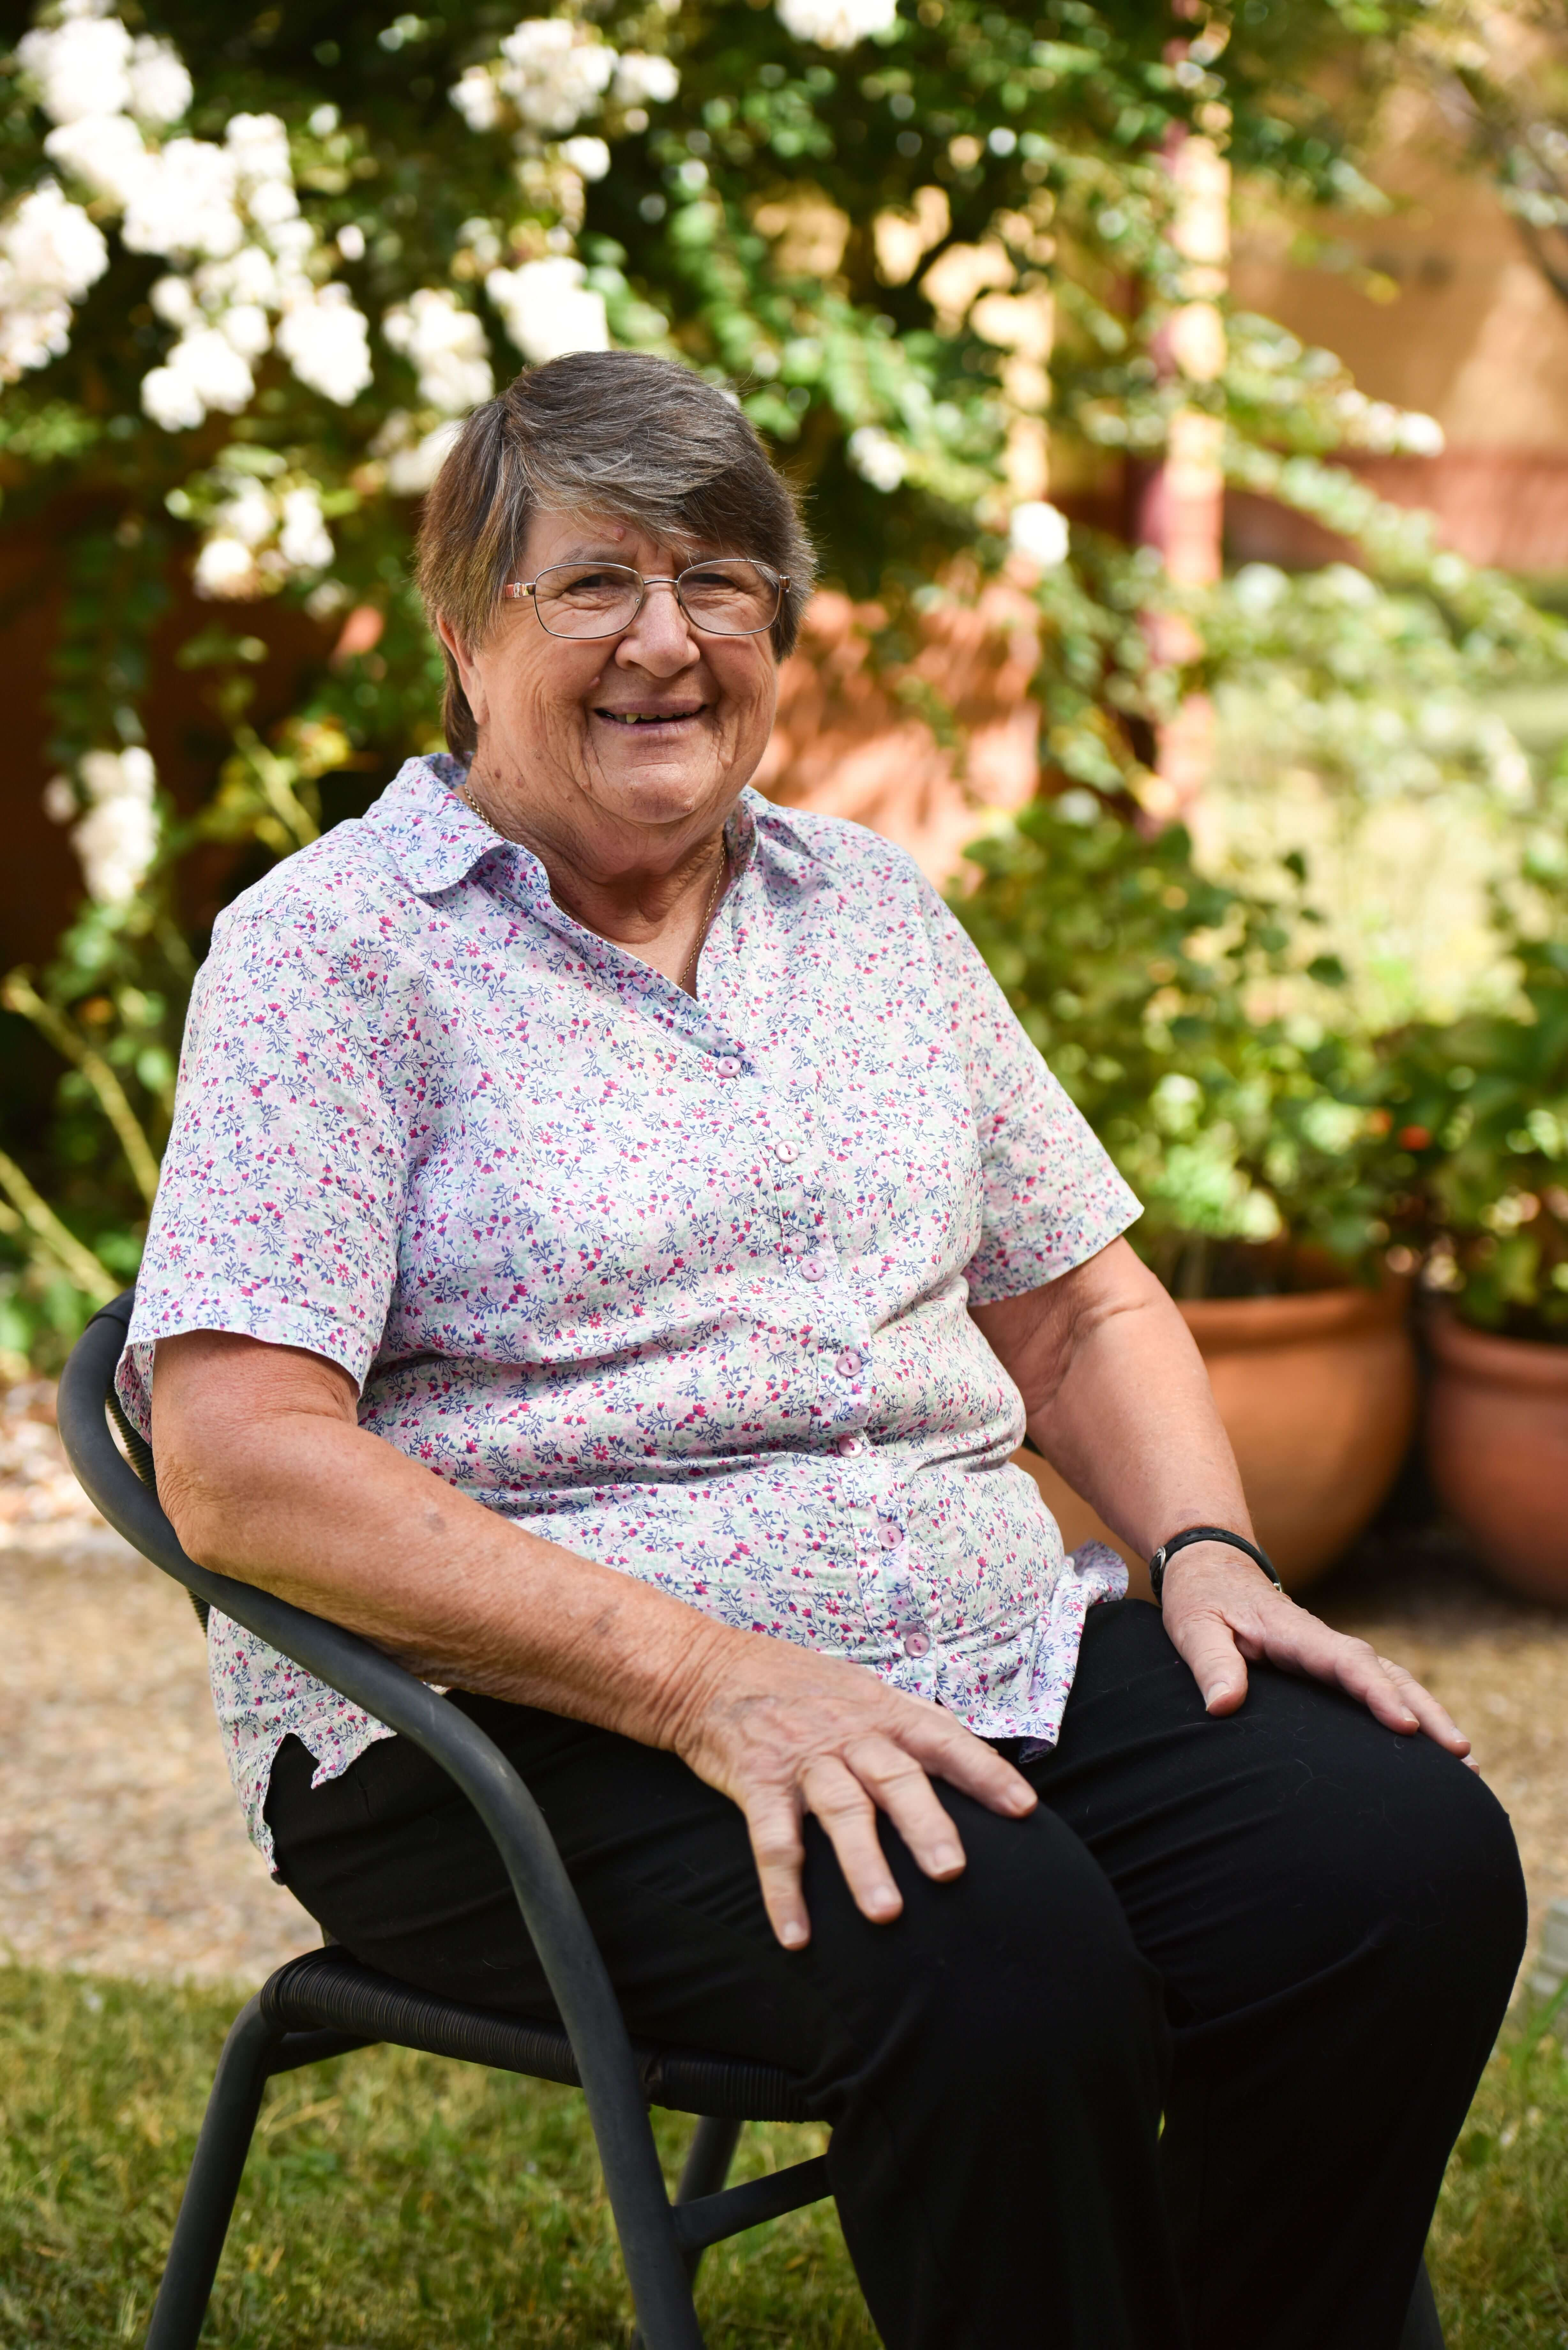 07091357 | RSL LifeCare - provide care and service to war veterans, retirement villages and accommodation, aged care services and assisted living